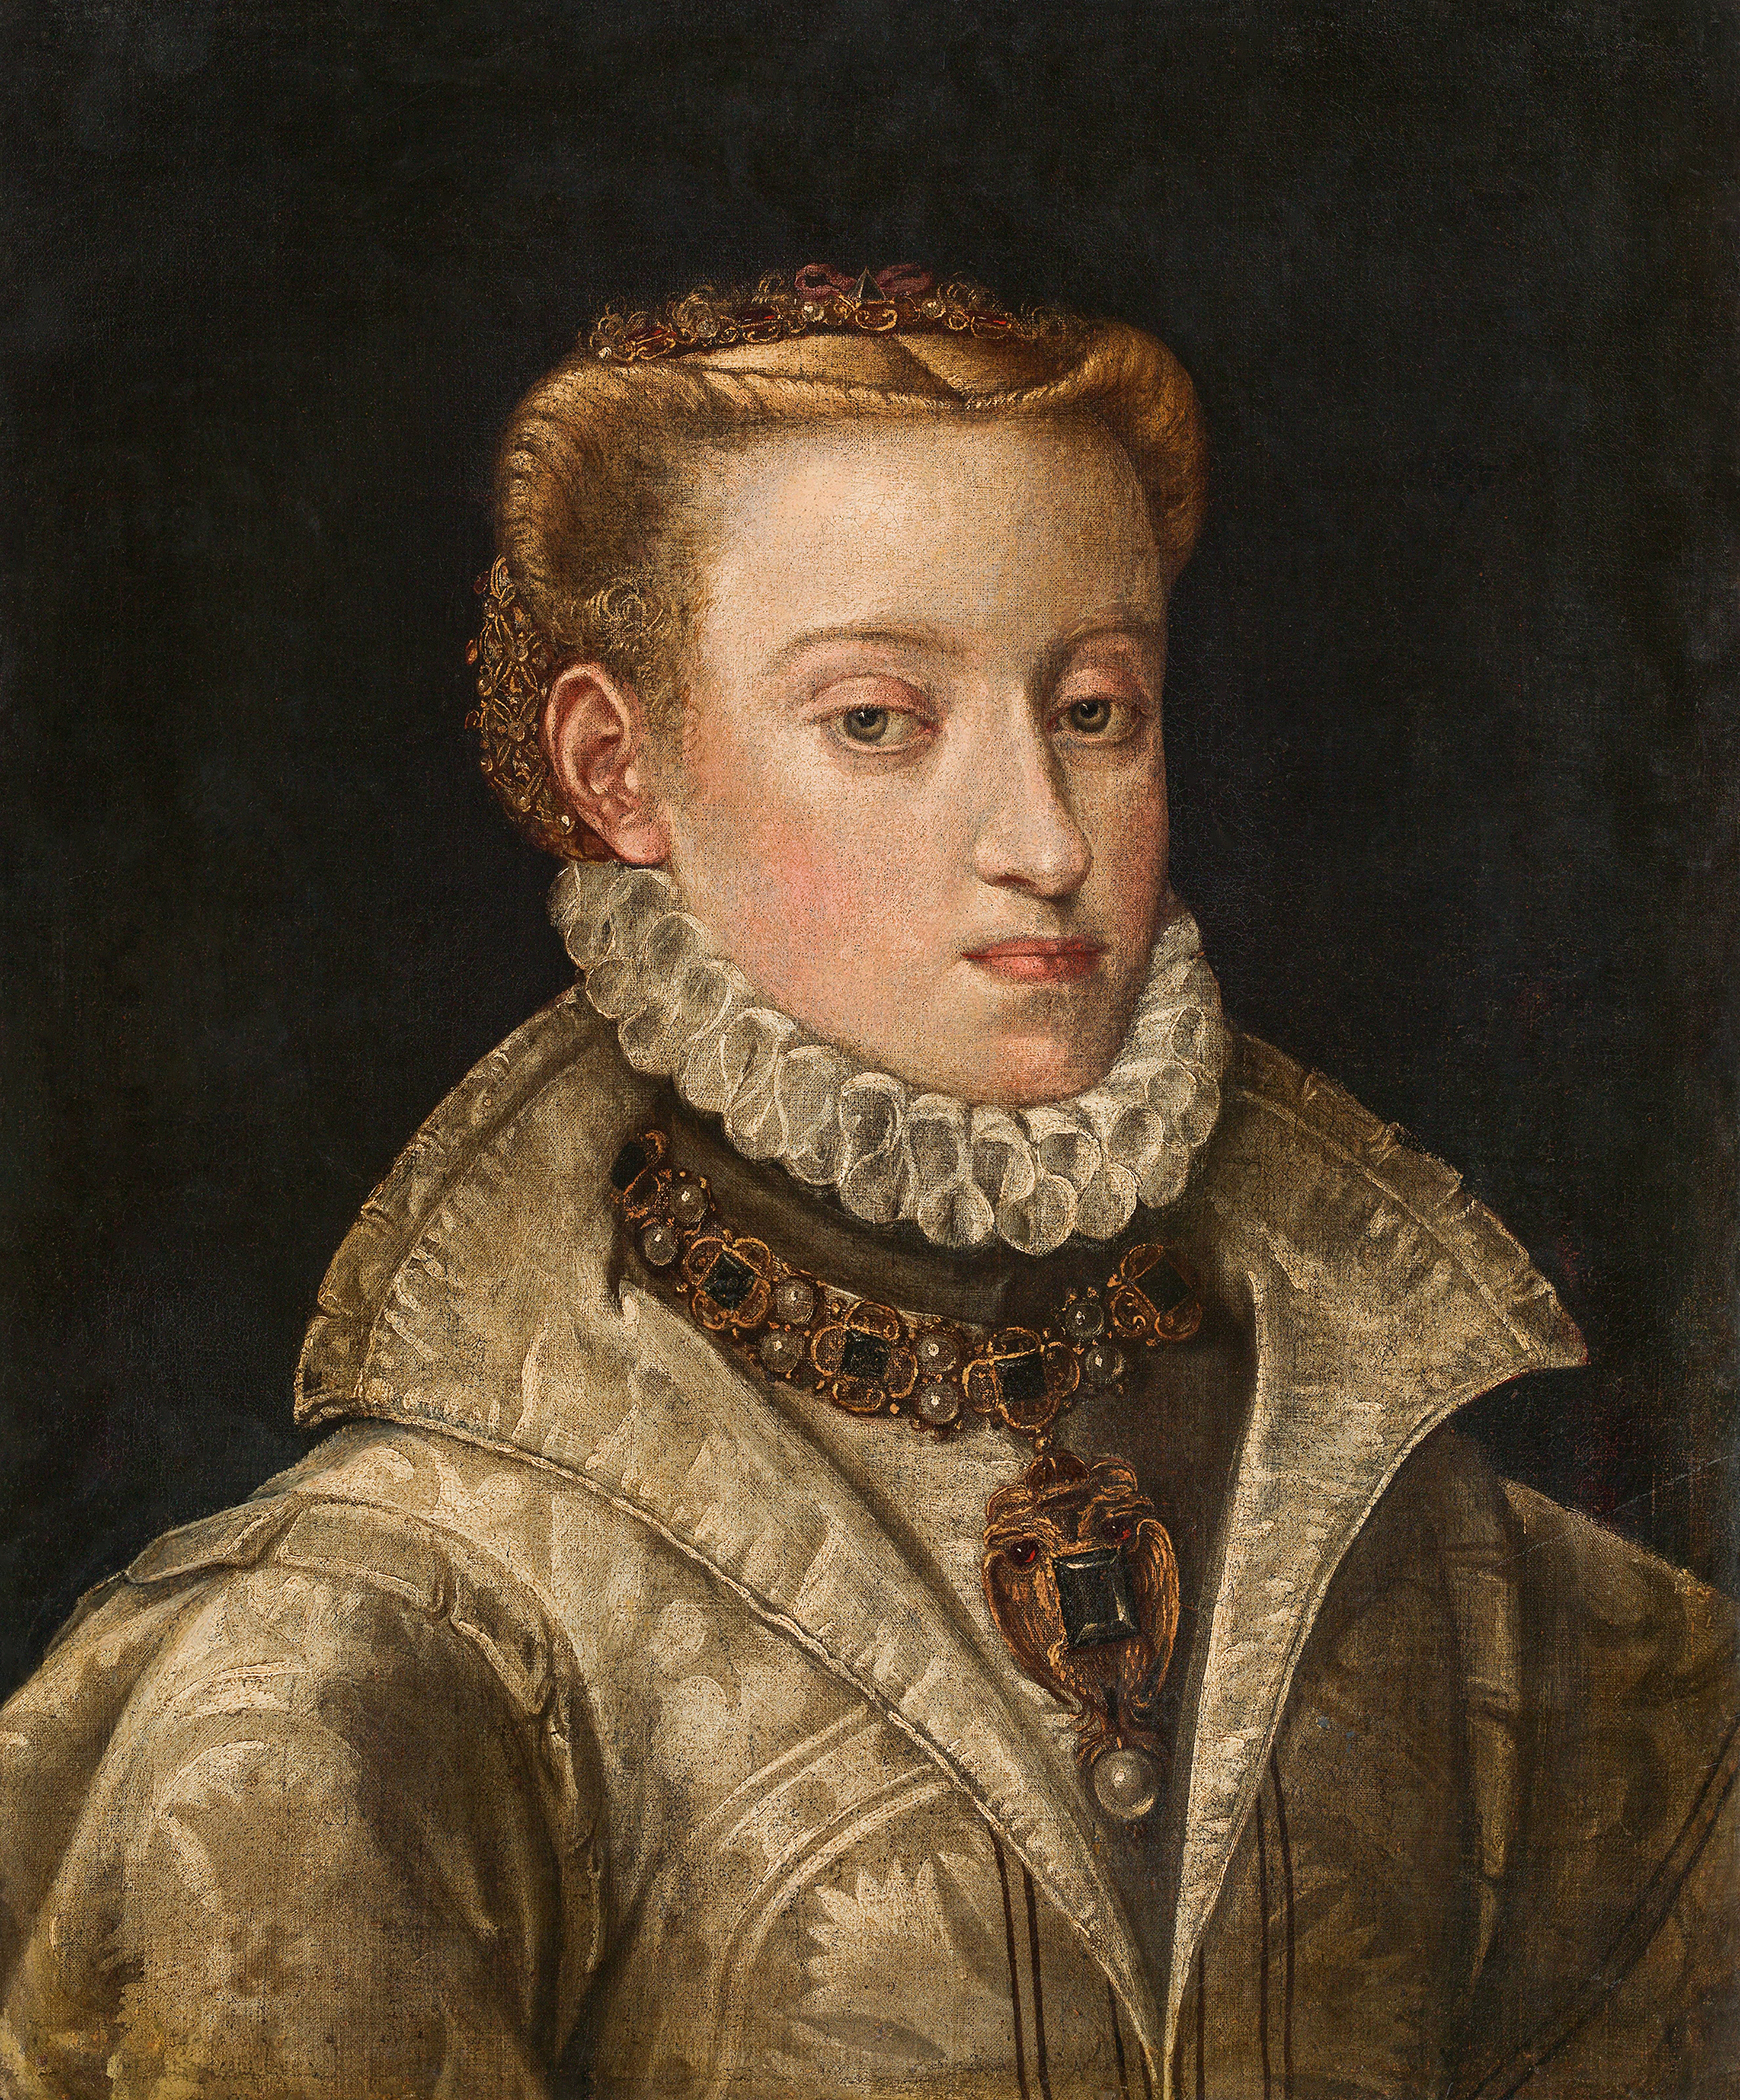 Portrait of Anna of Austria (1549-1580), Queen consort of Spain (1570-1580) | Portraits of Kings